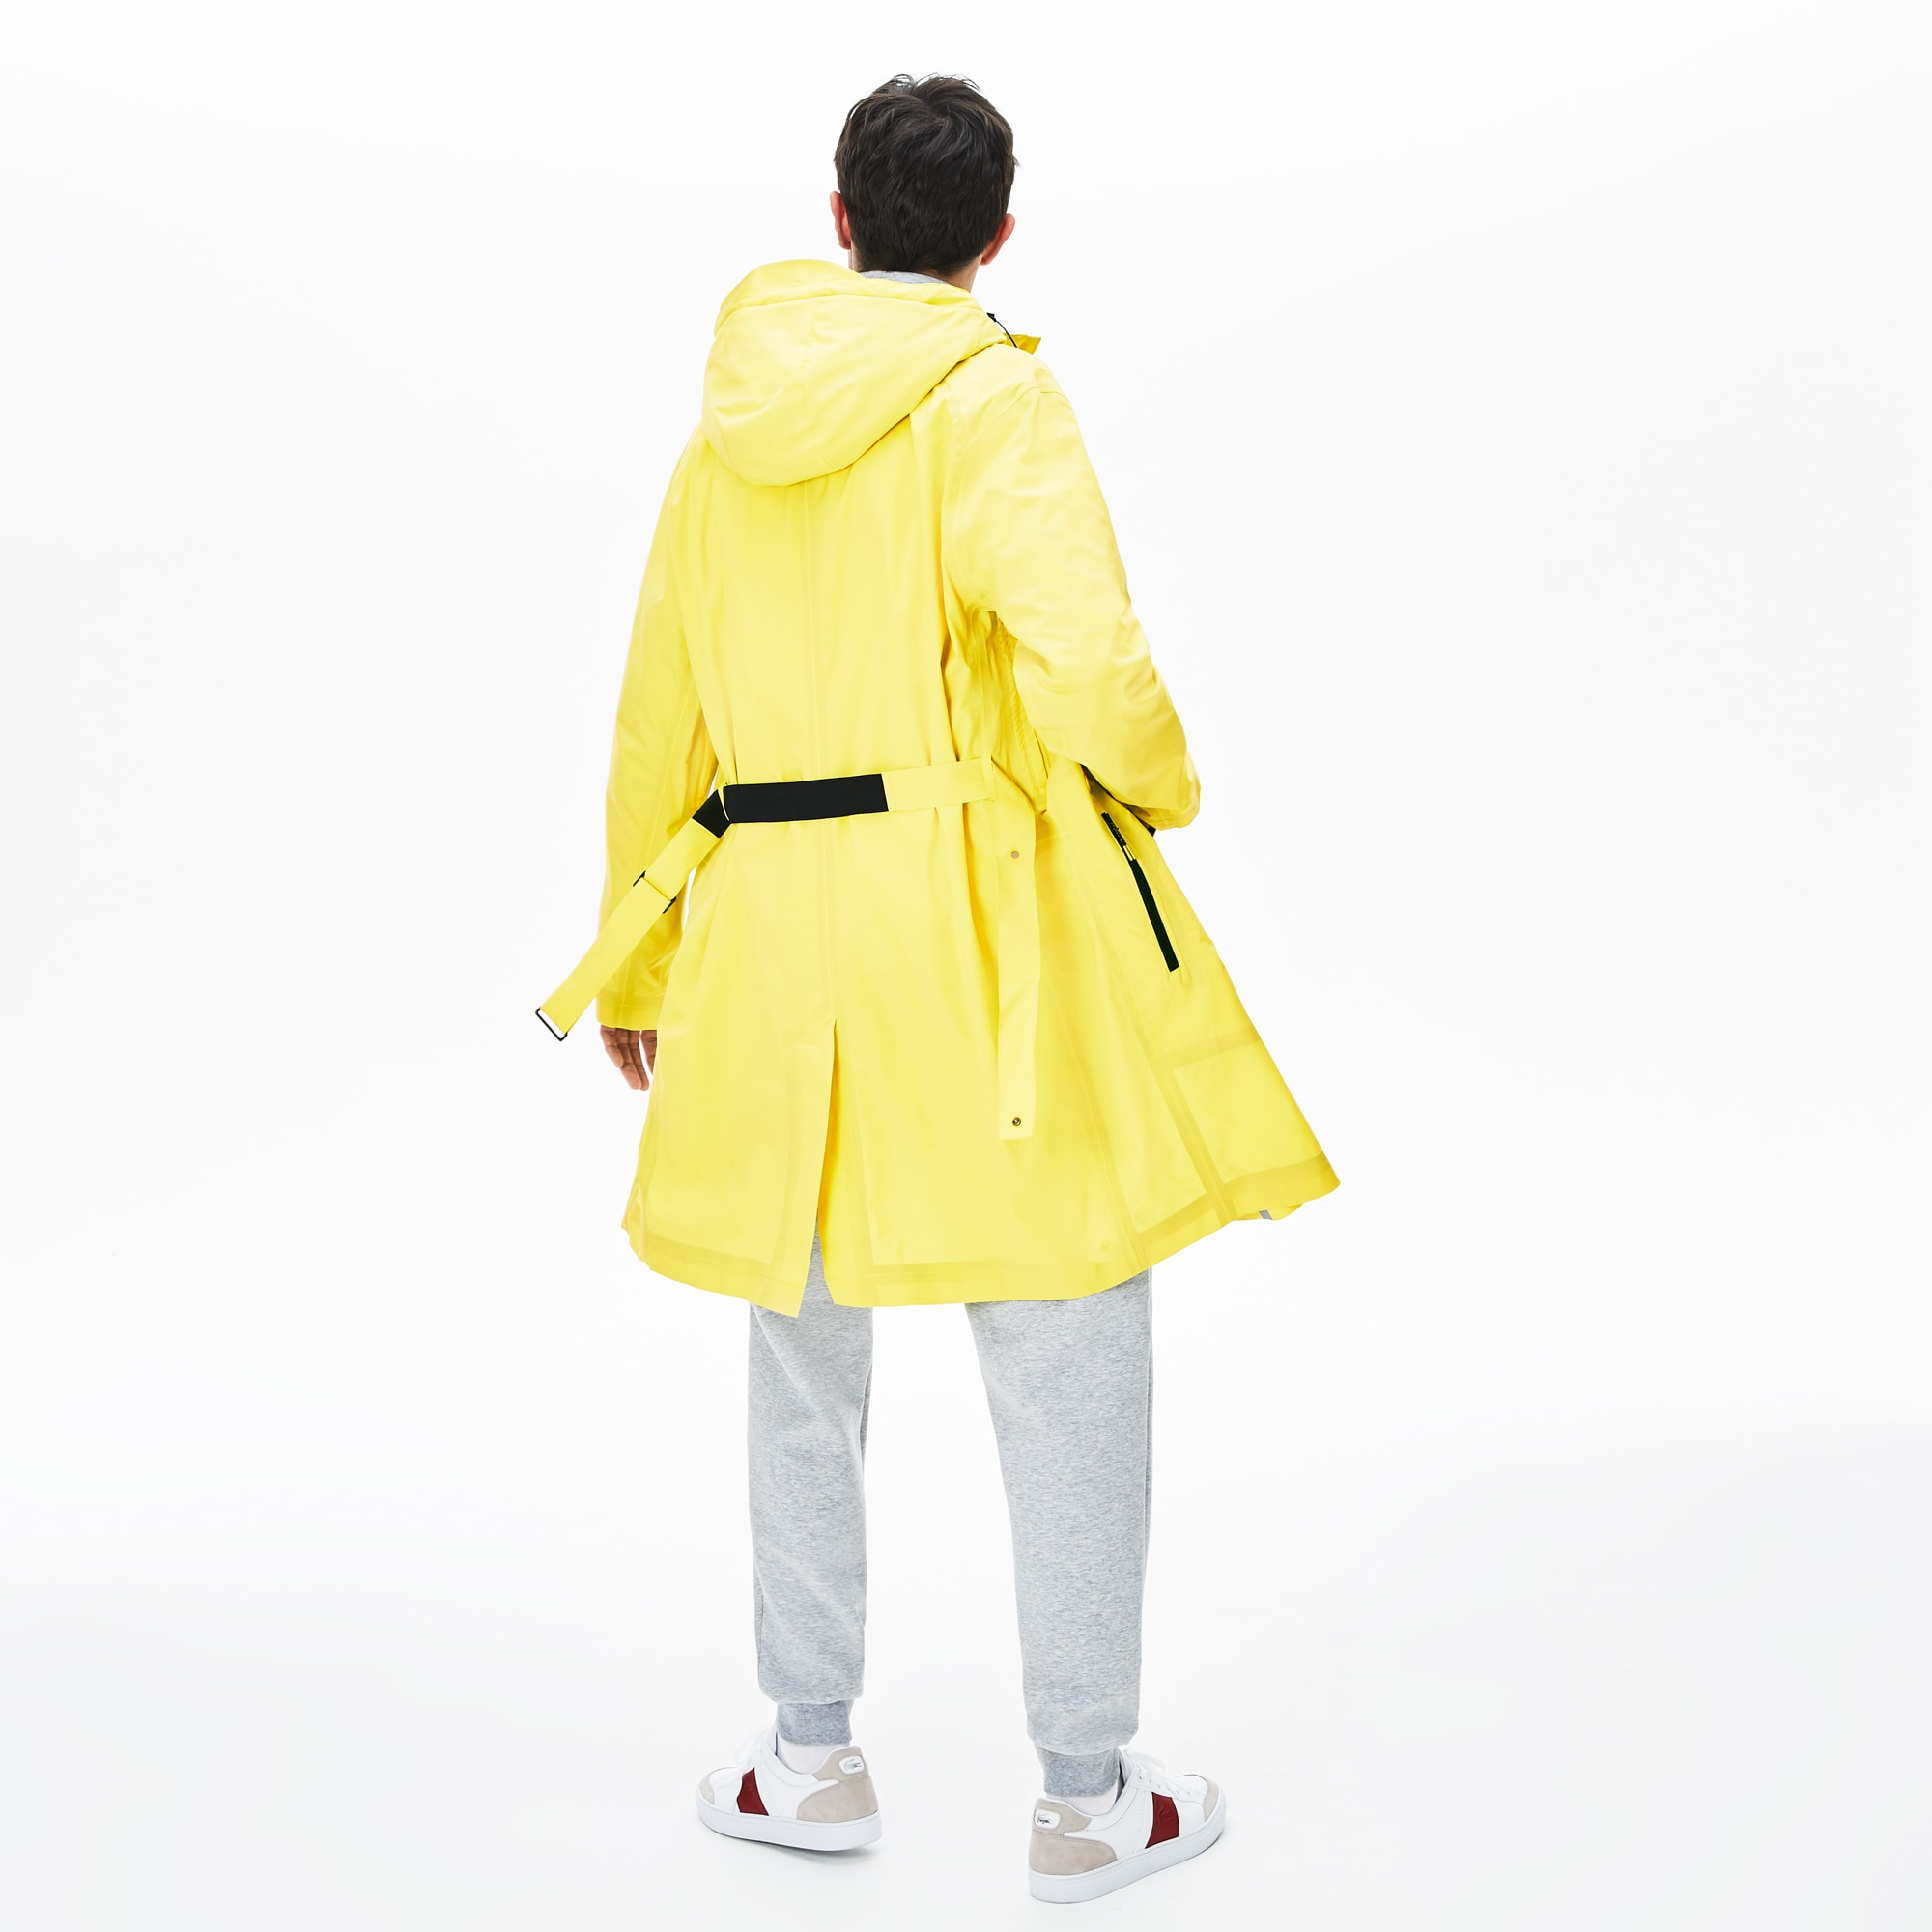 Men's Motion 3-in-1 Raincoat With Detachable Vest